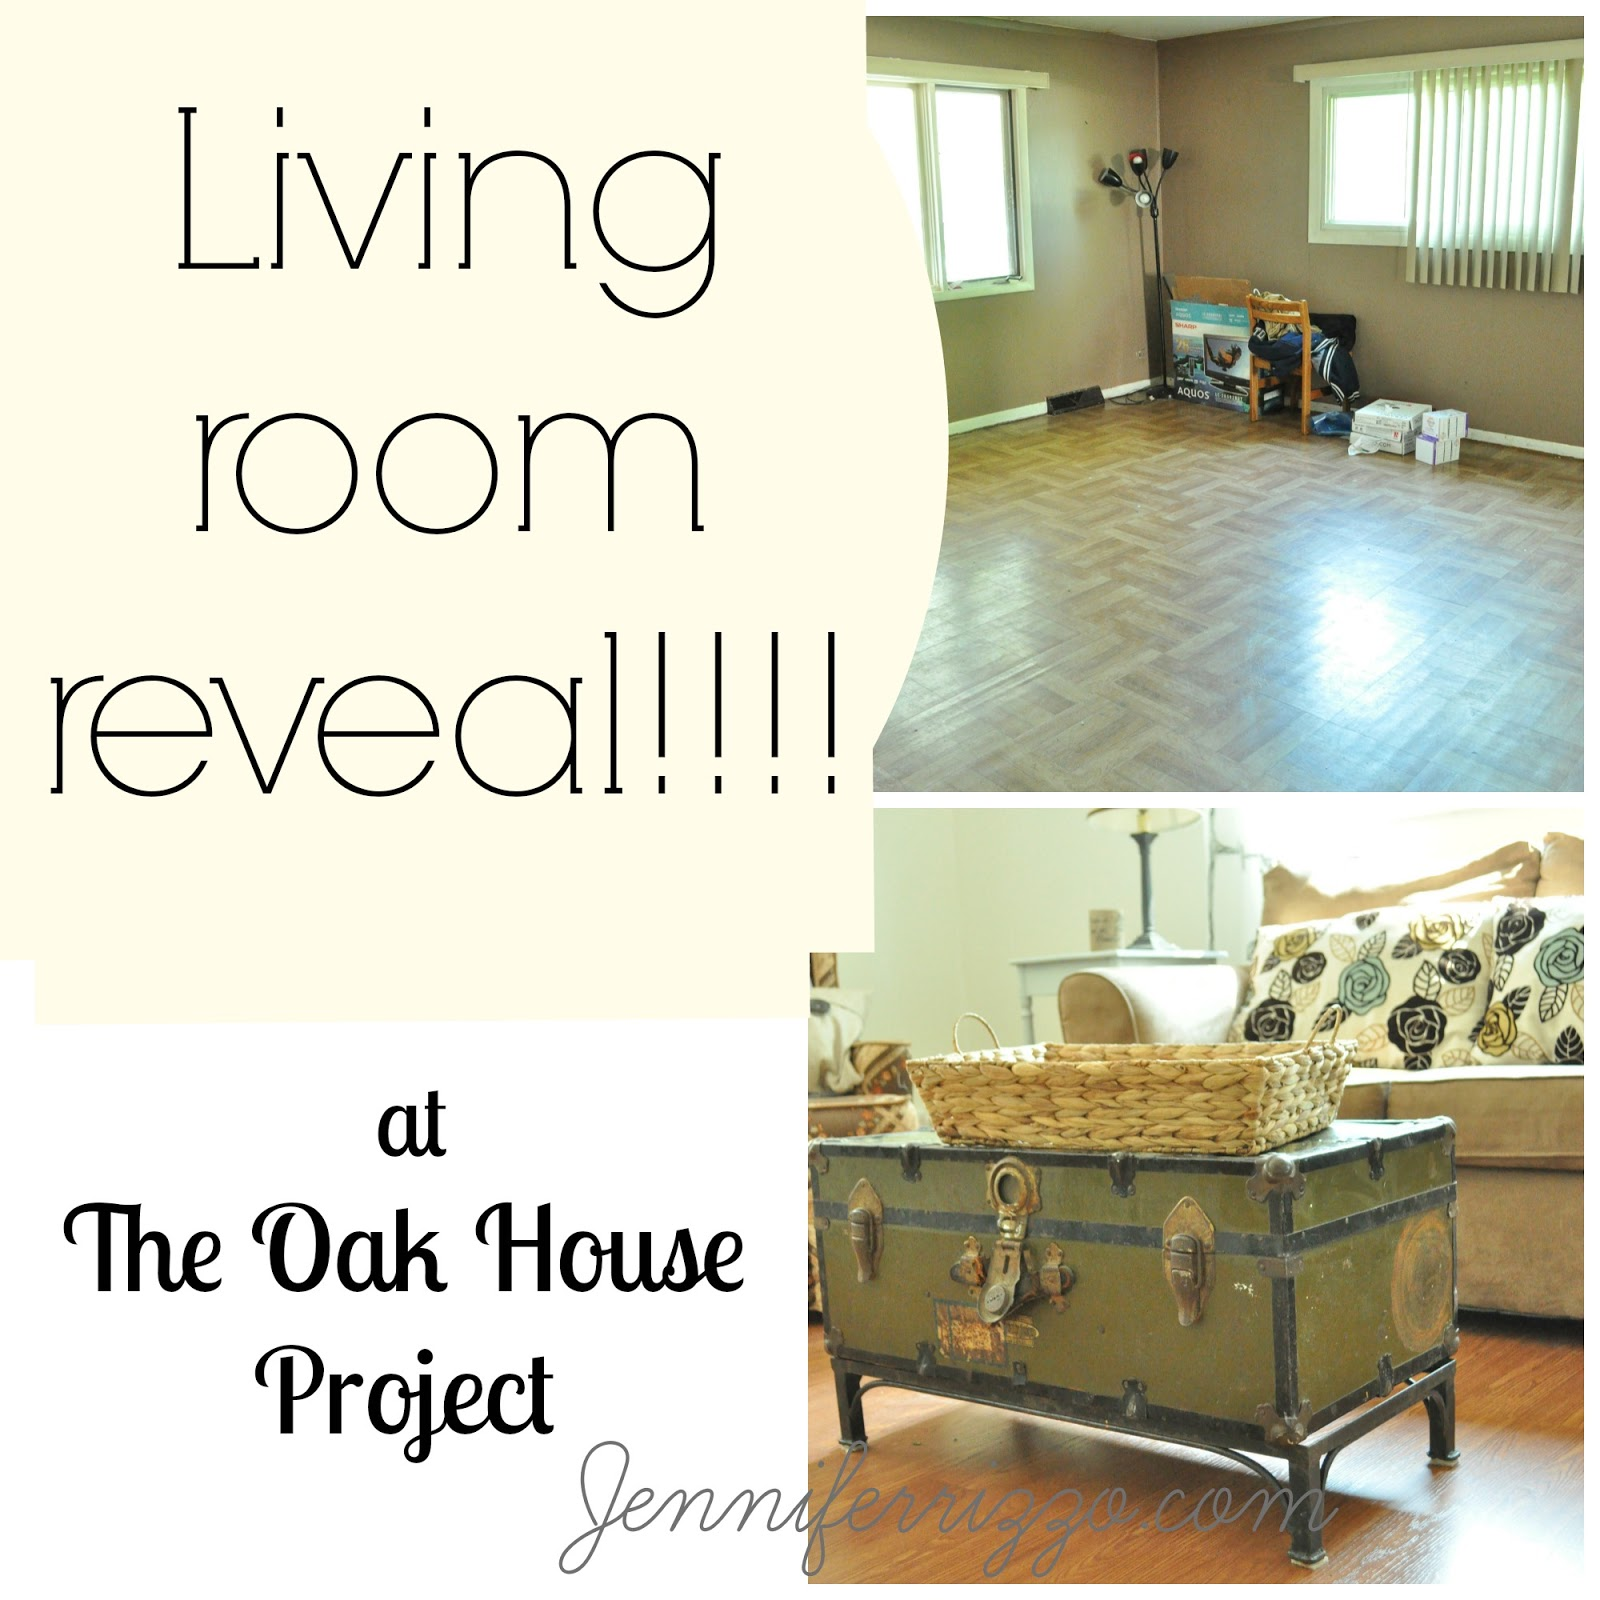 Complete Living Room Reveal With Beforeu0027s And Afters!